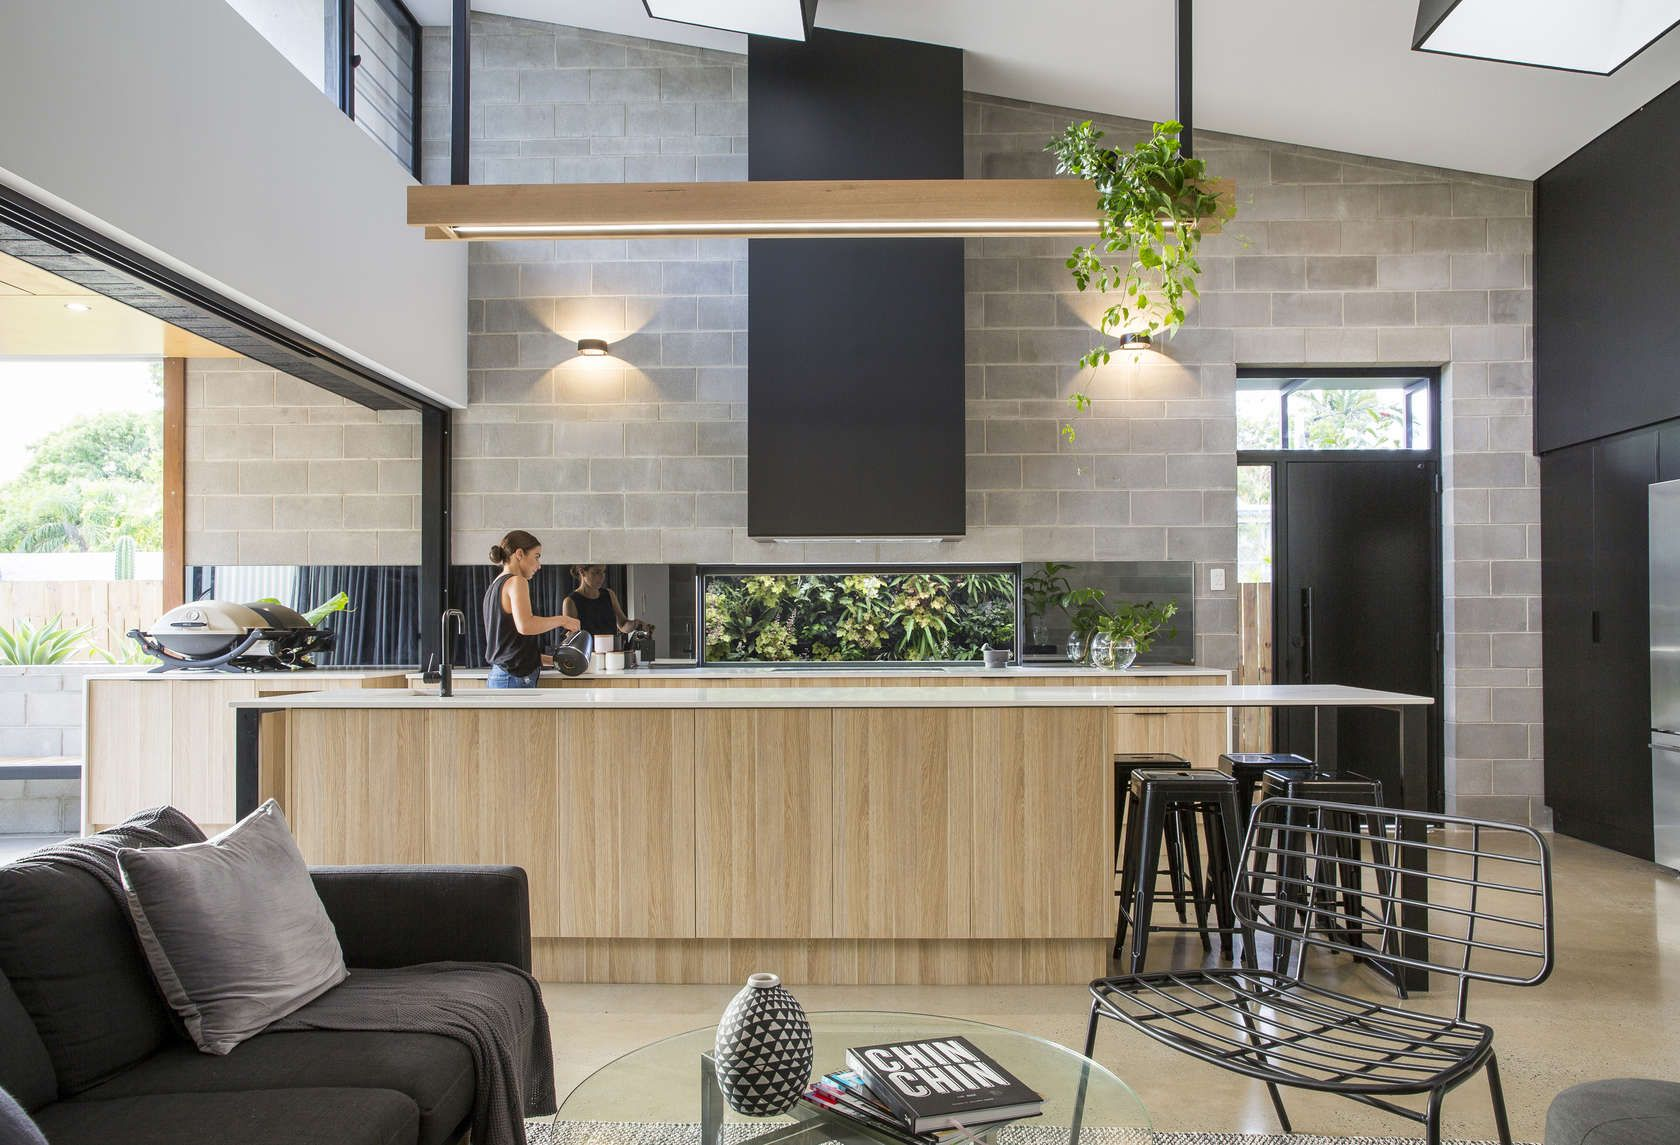 The Laneway House Is Located On A Ten Metre Wide Allotment, In An Inner  City Suburb That Is Defined By Small Scale Traditional Queenslander  Cottages And .